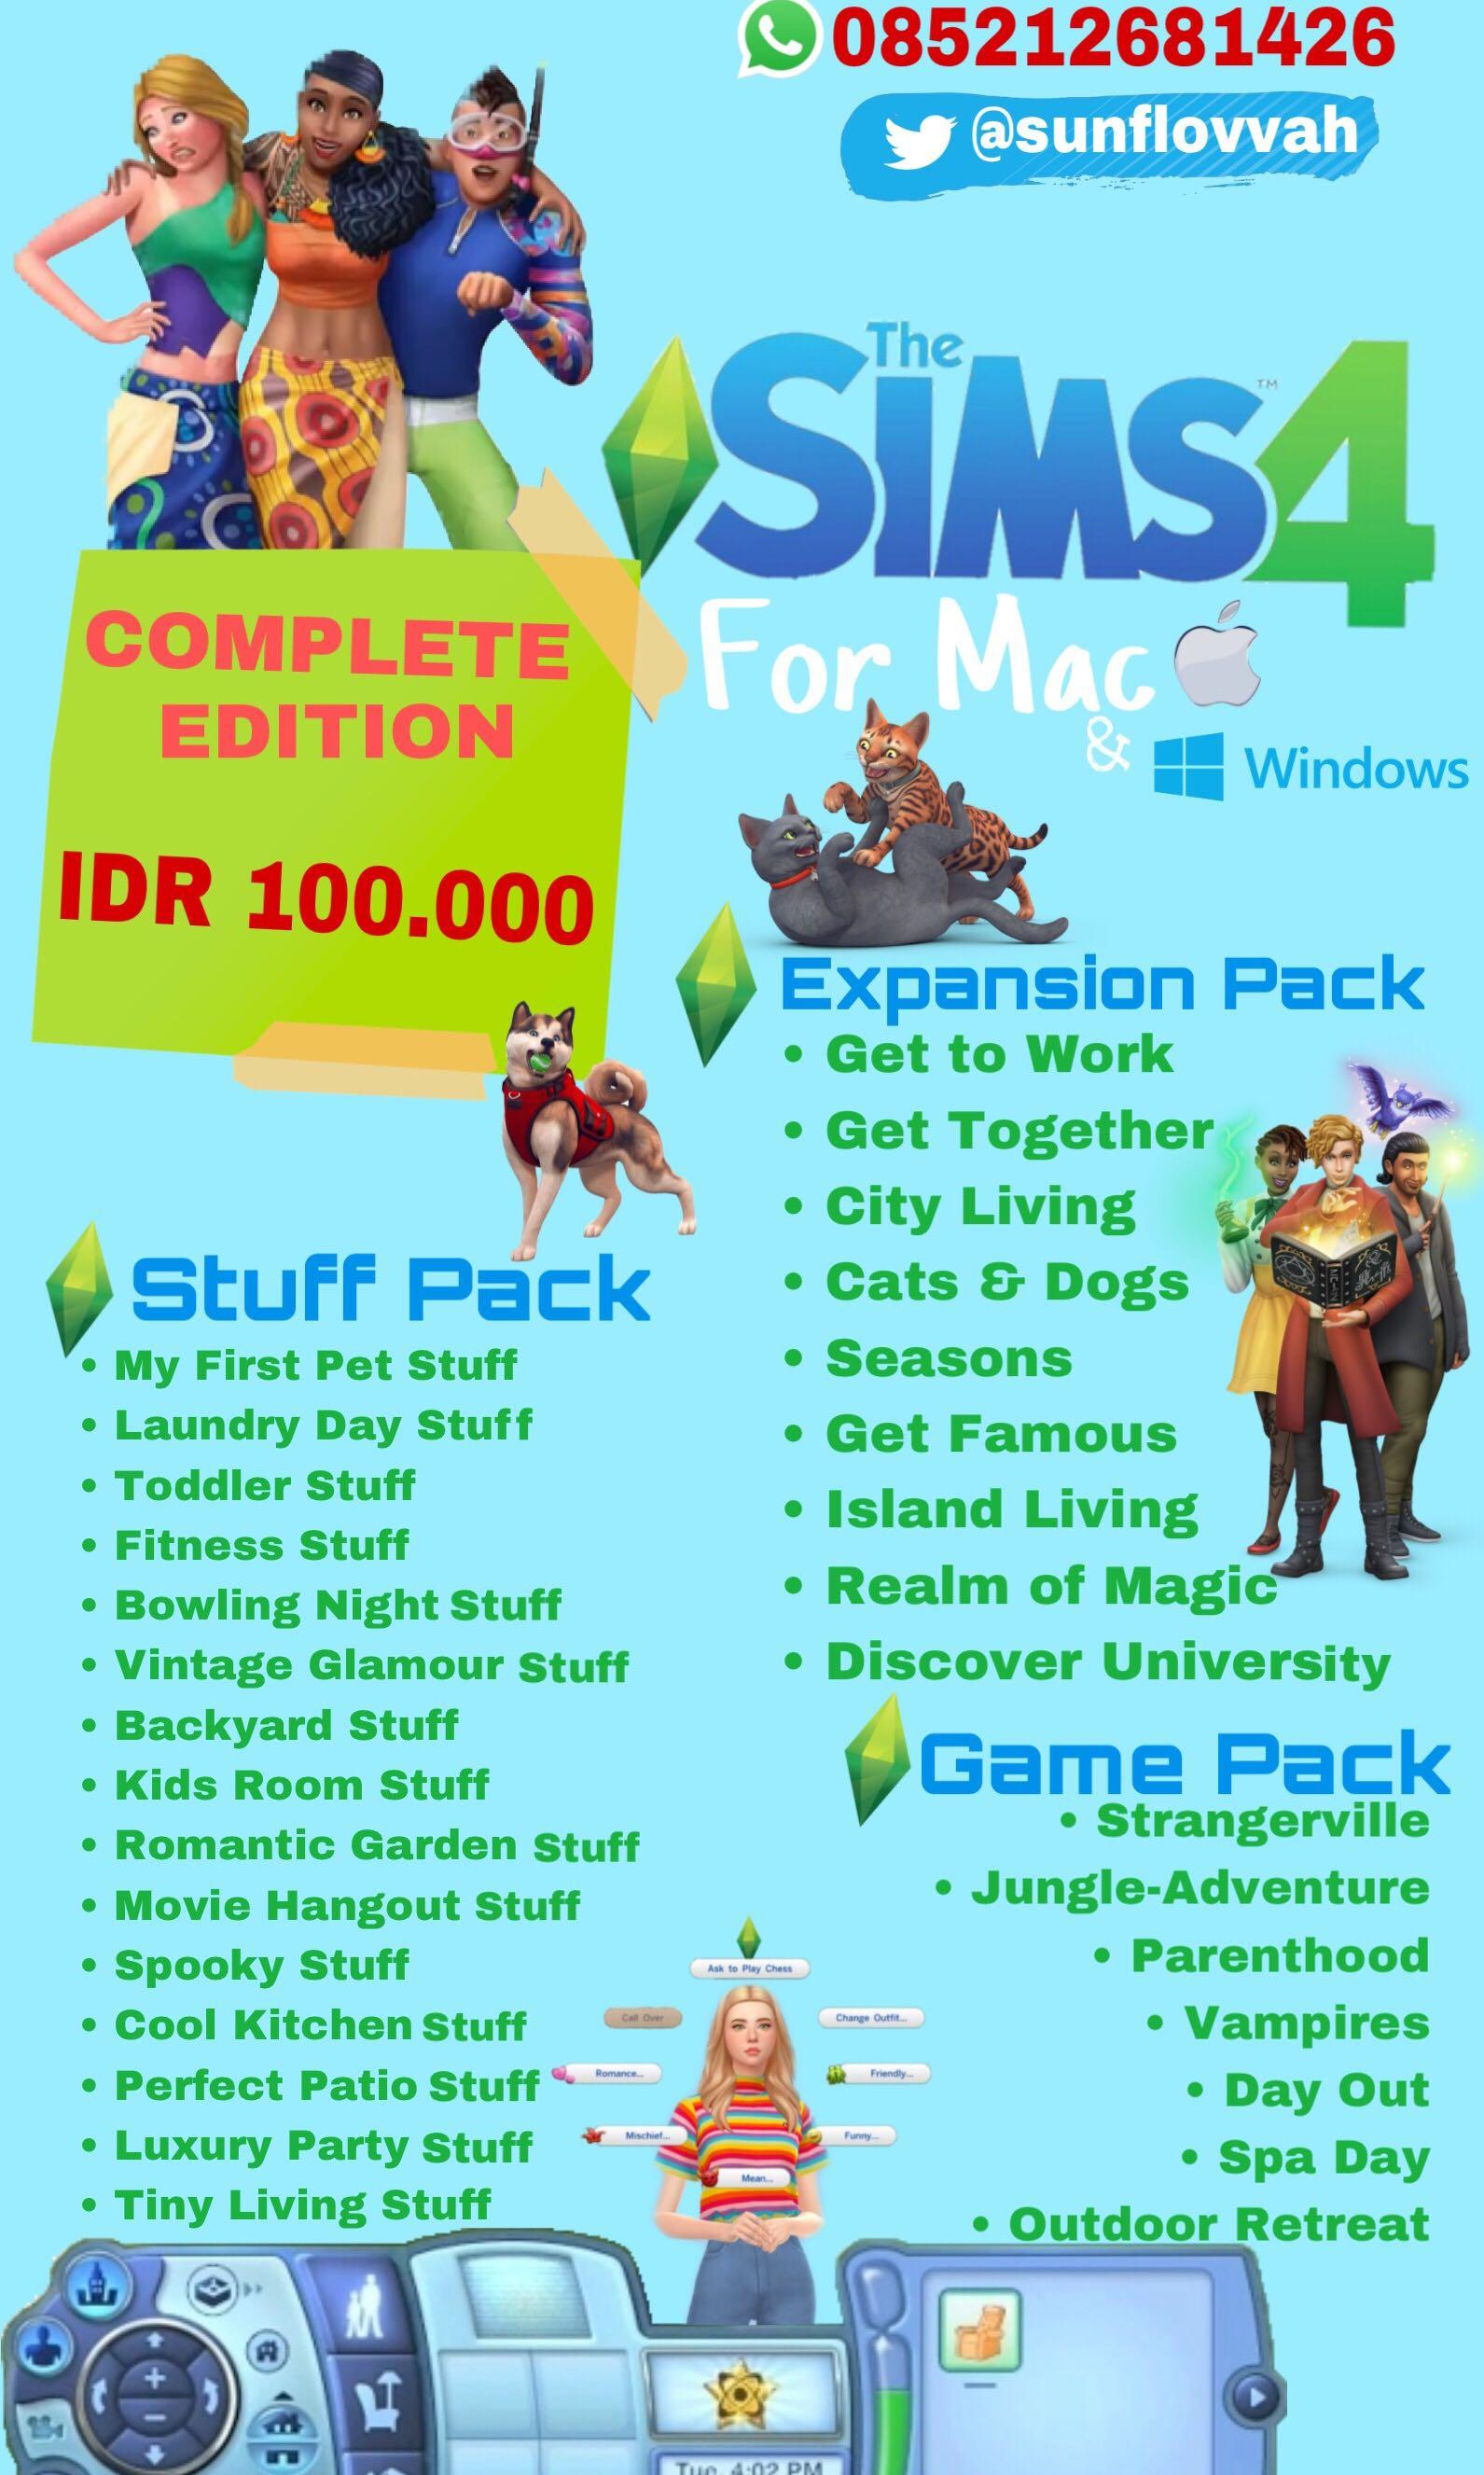 THE SIMS 4 COMPLETE EDITION FOR MAC & WINDOWS